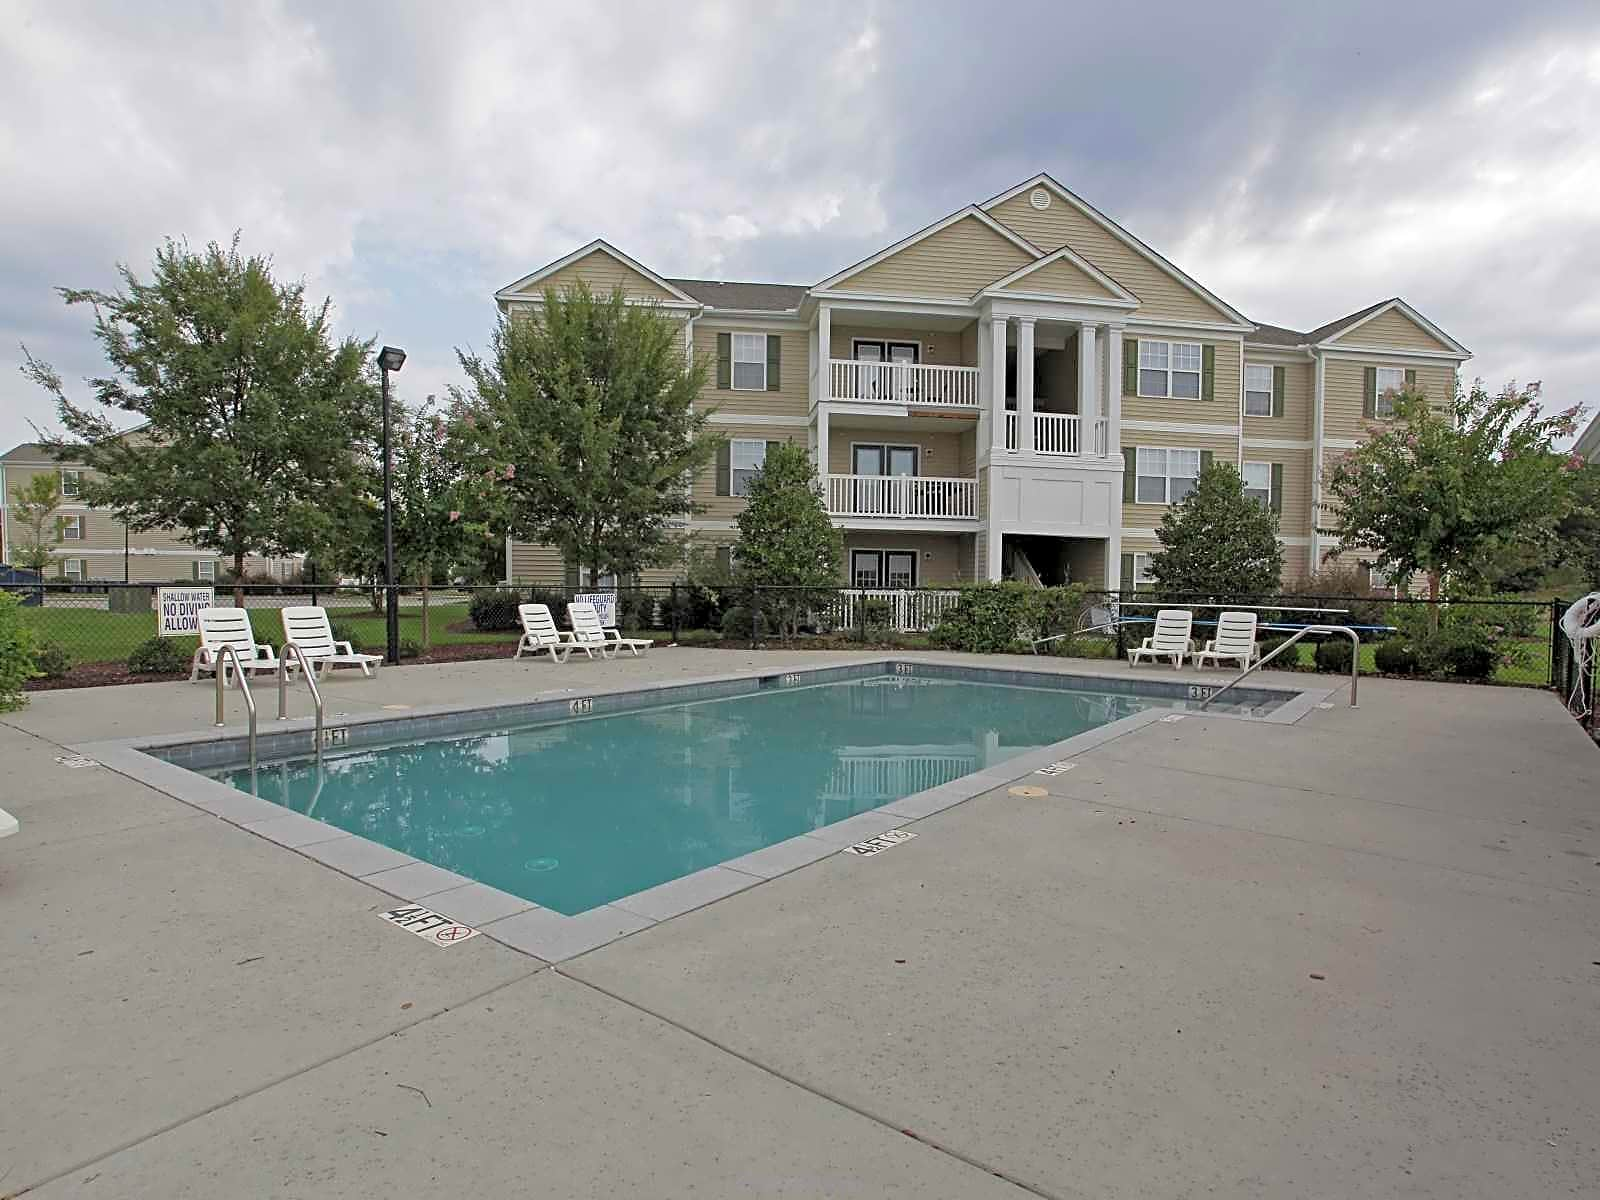 Apartments Near Francis Marion Somersett Acres for Francis Marion University Students in Florence, SC